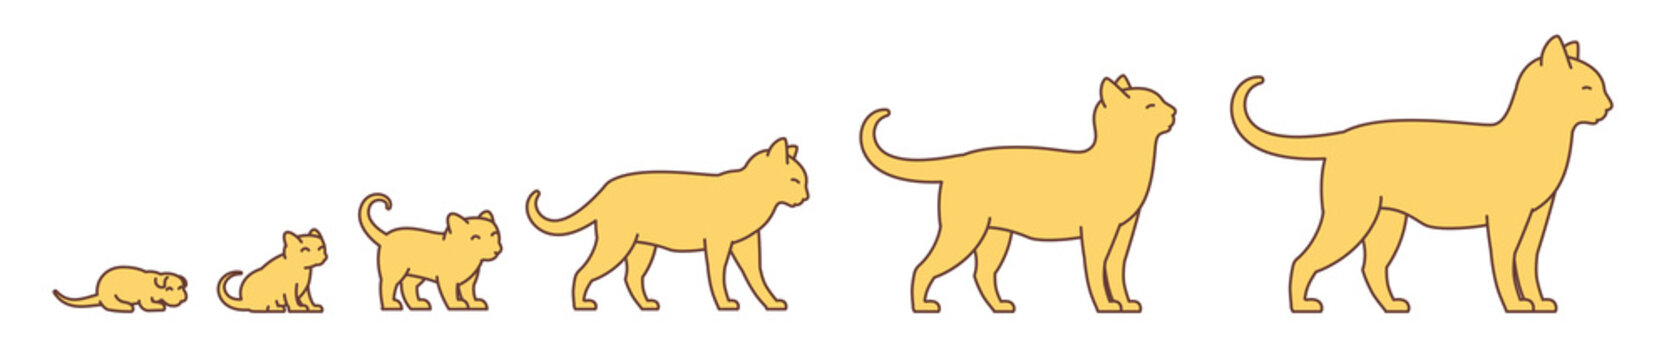 Stages of cat growth set. From kitten to adult cat. Animal pets. Pussy grow up animation progression. Pet life cycle. Vector illustration.